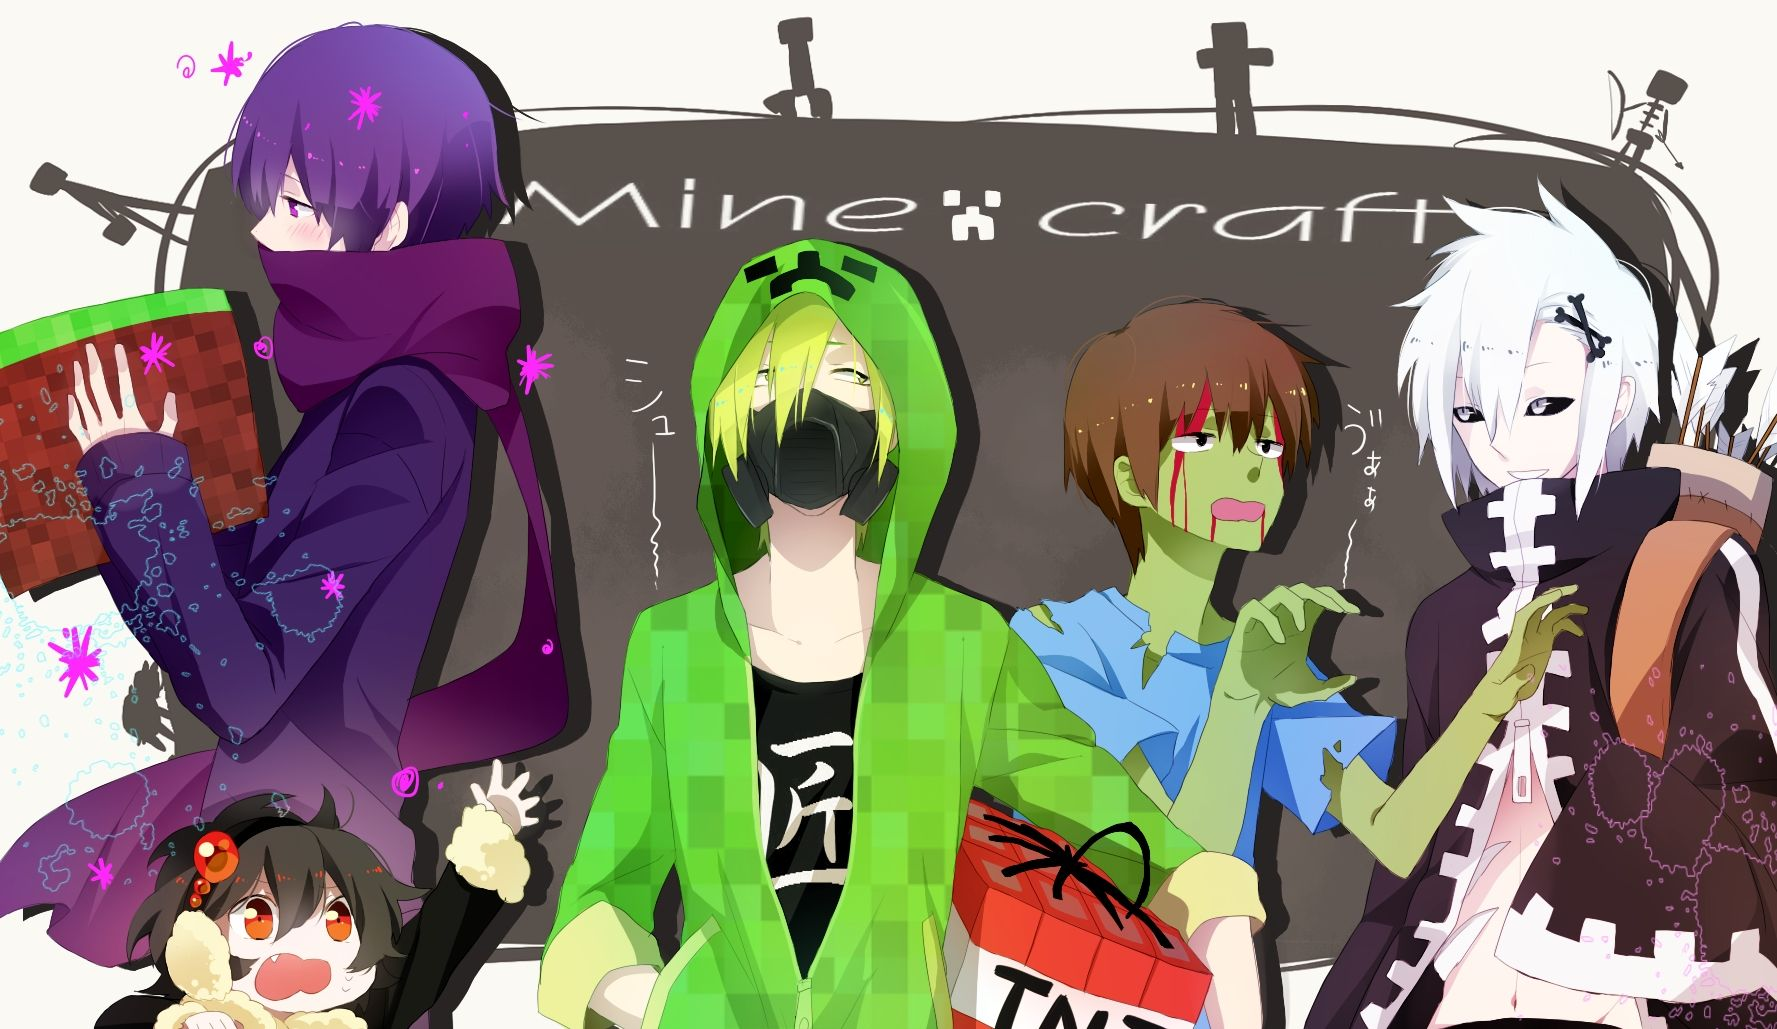 Minecraft Anime Minecraft Enderman Anime Minecraft Anime